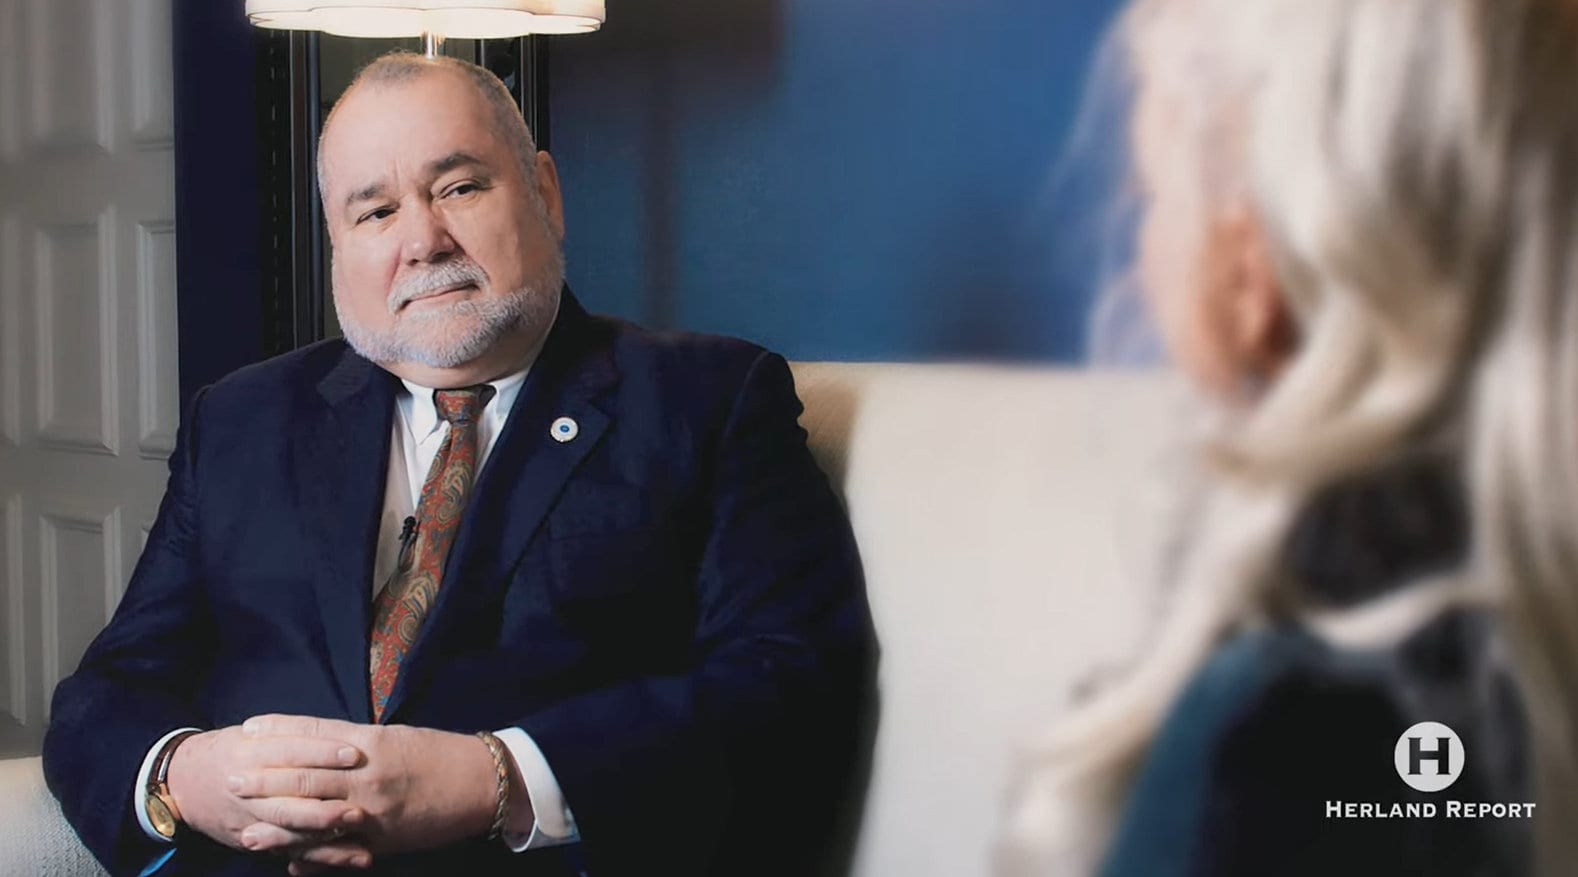 TV interview Robert David Steele: Our political system is totally corrupted, rigged, Hanne Nabintu Herland Report